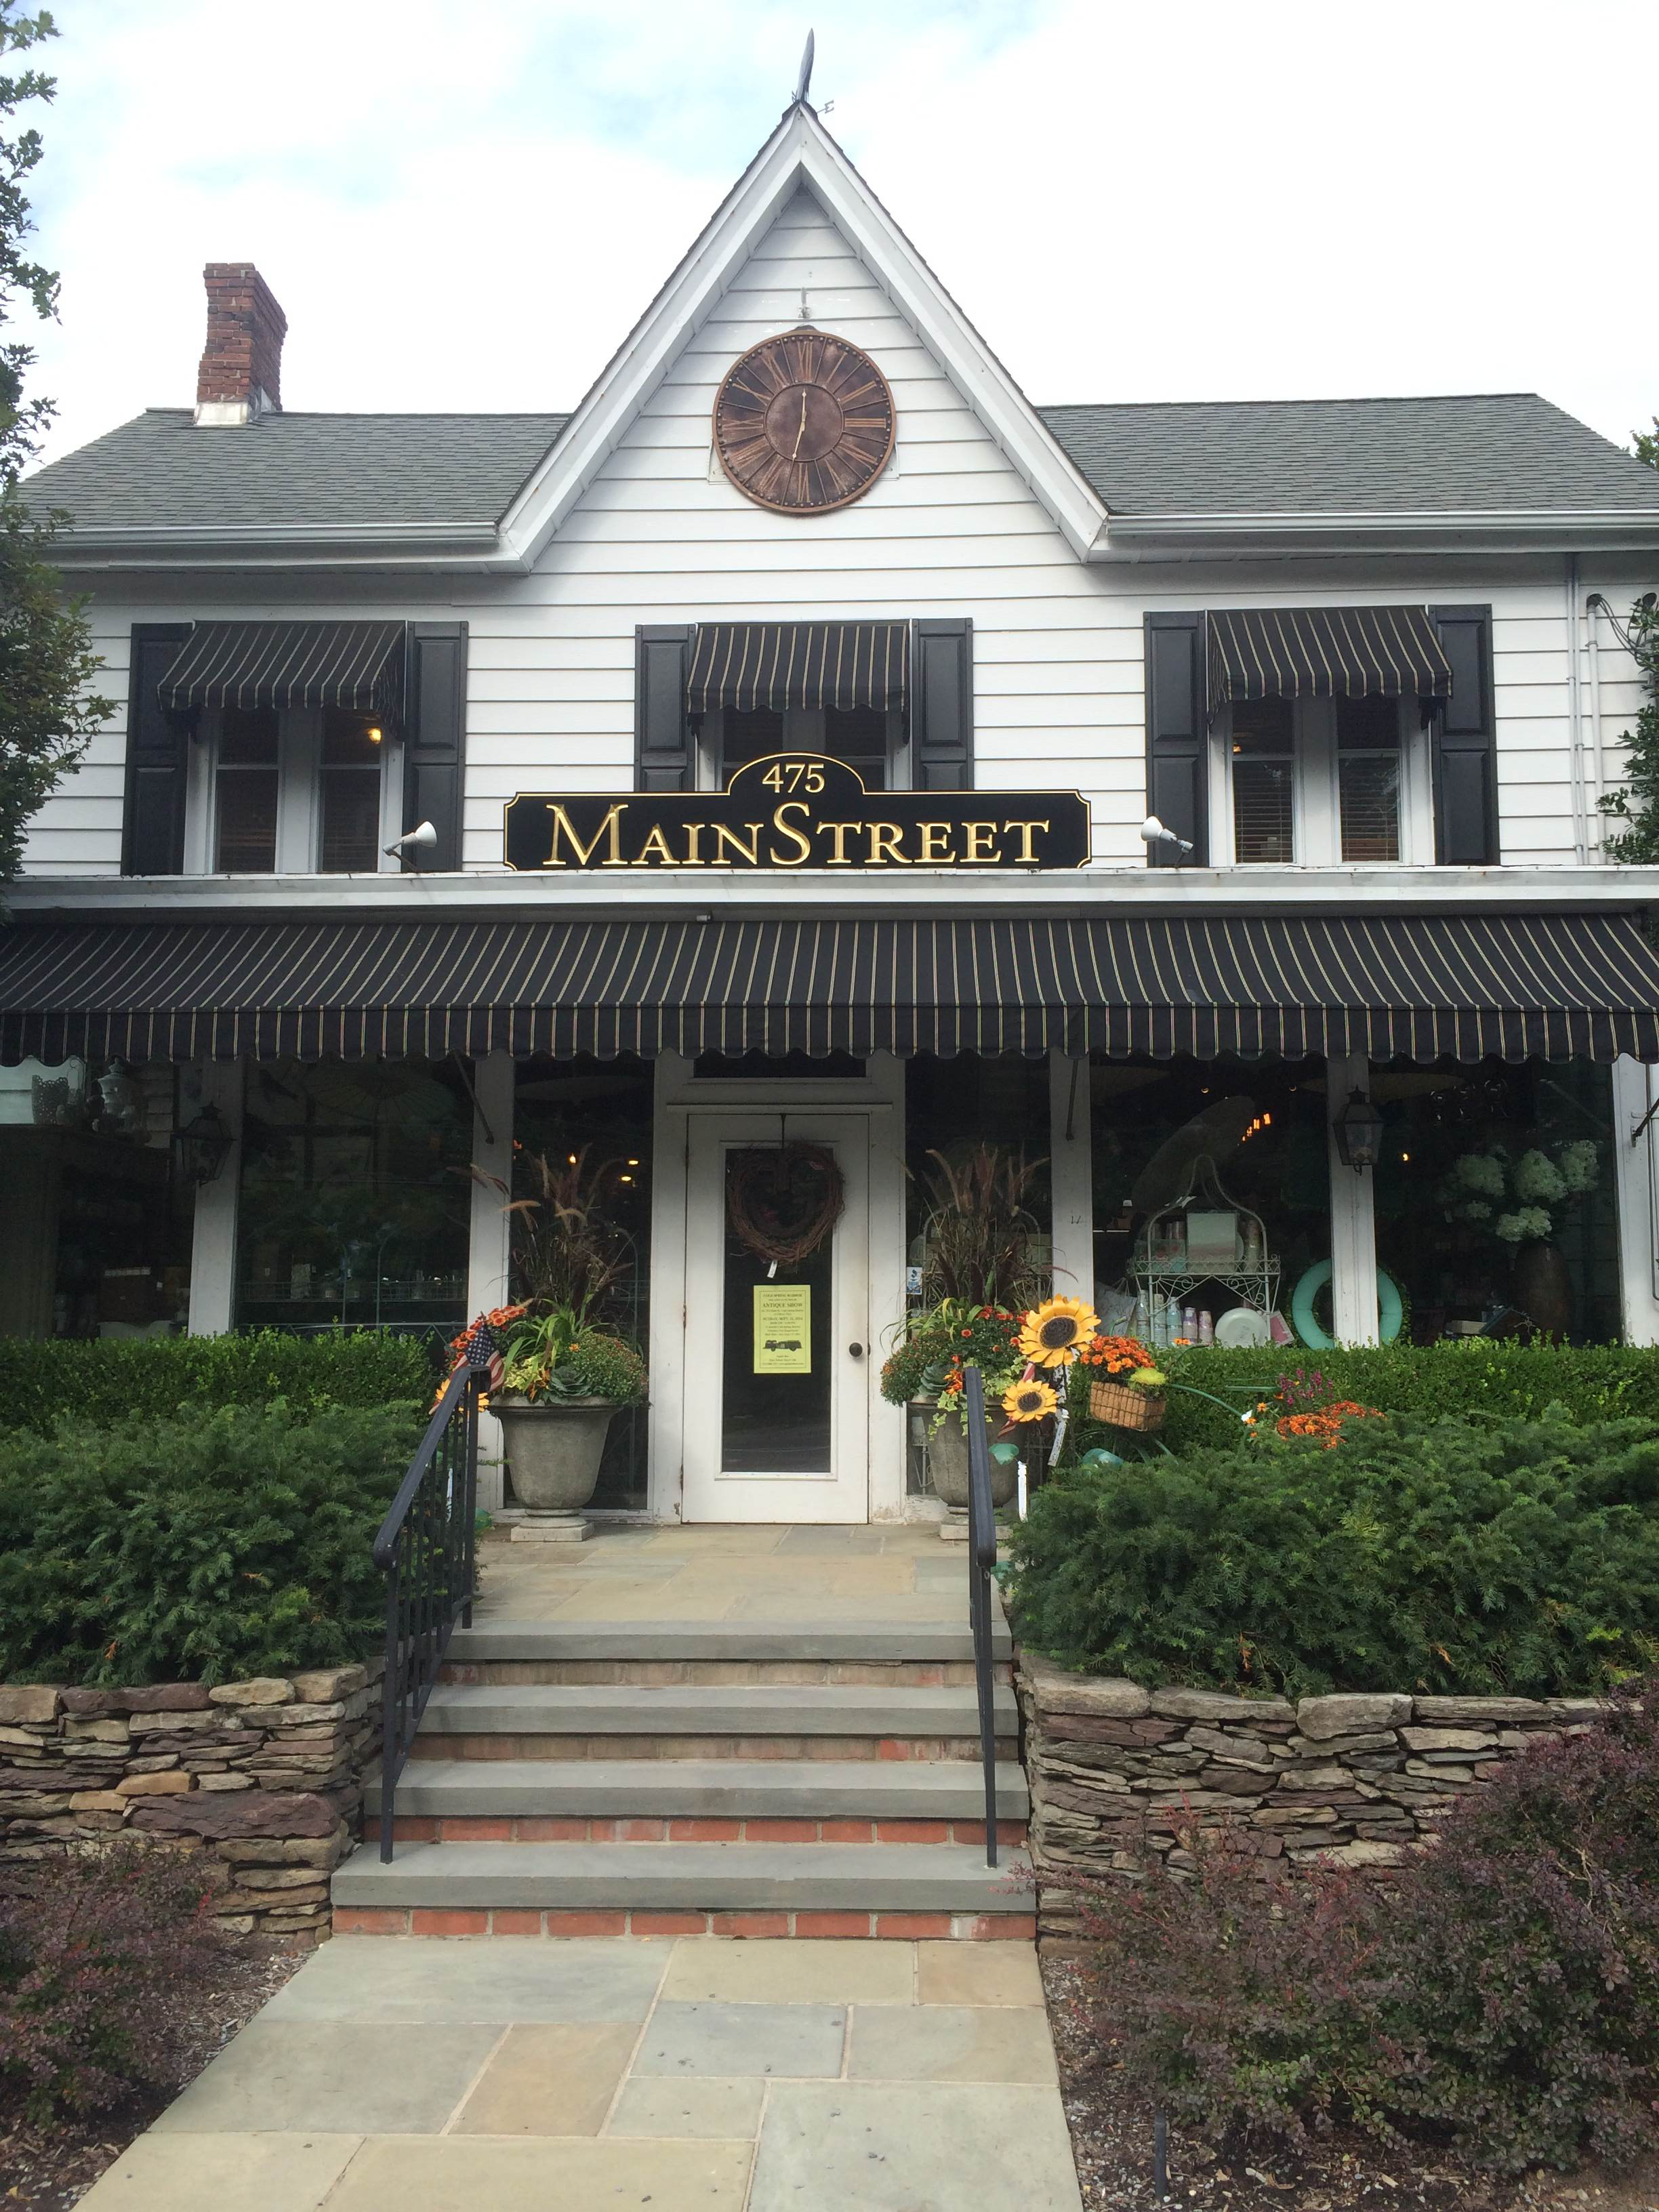 In between Huntington village and Cold Spring Harbor is Main Street Nursery.